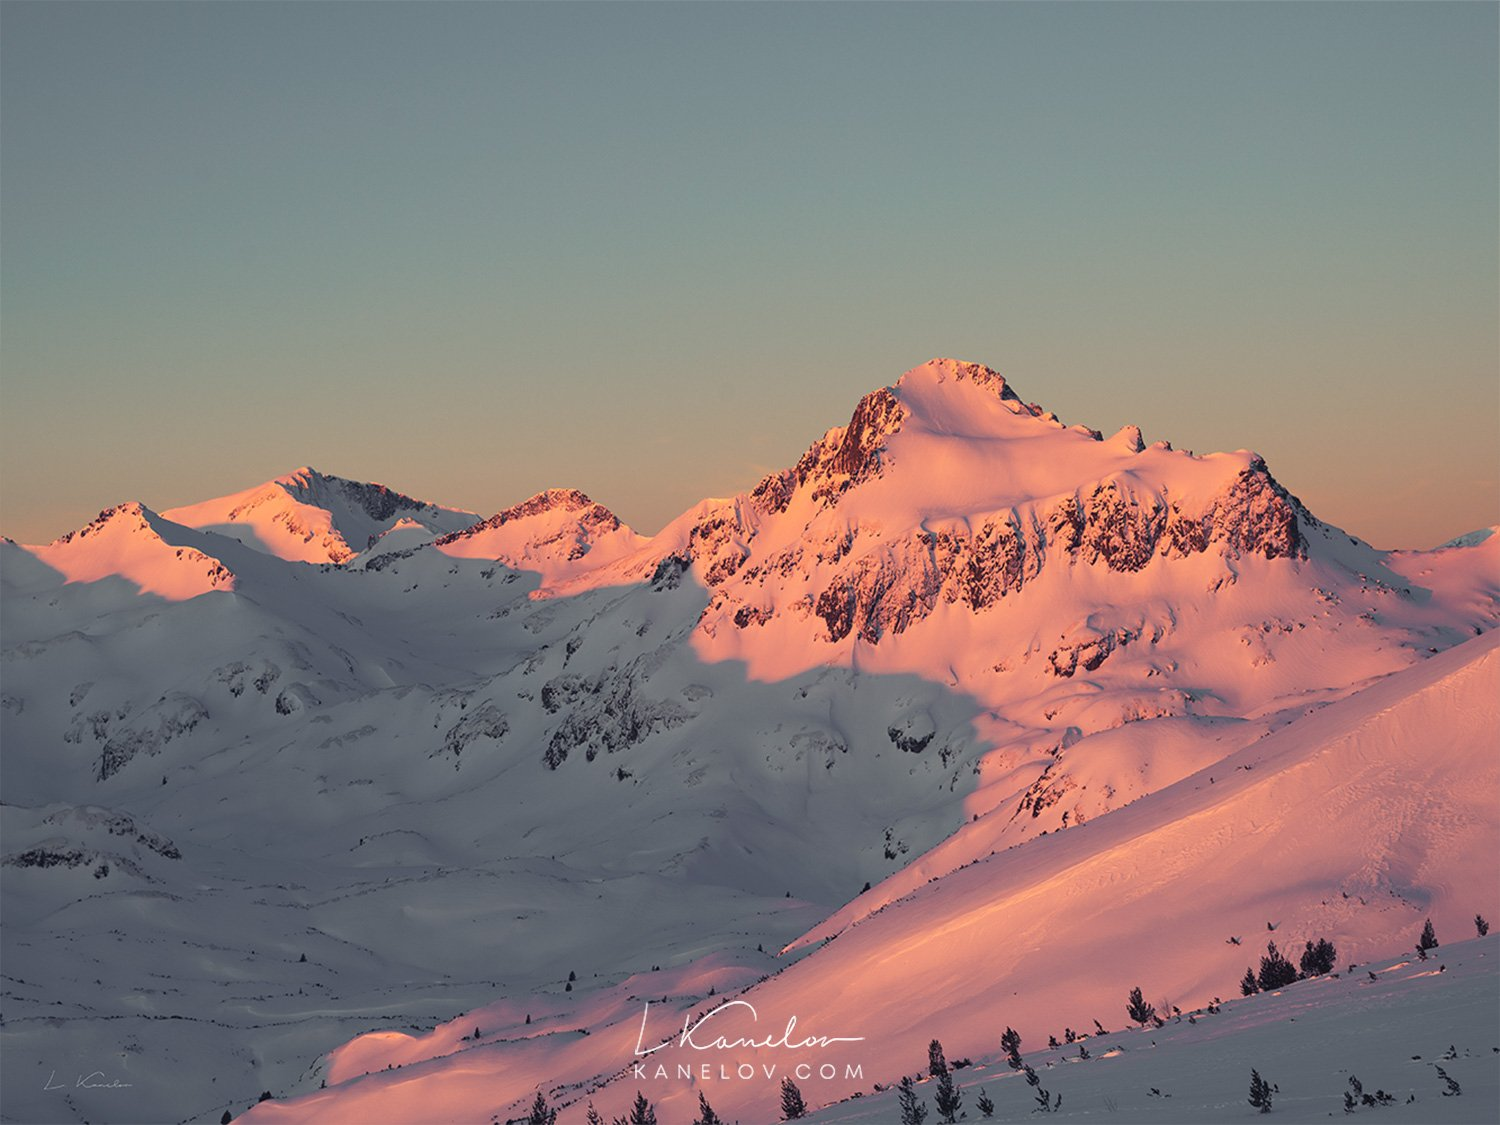 Winter sunset over a snow covered mountain